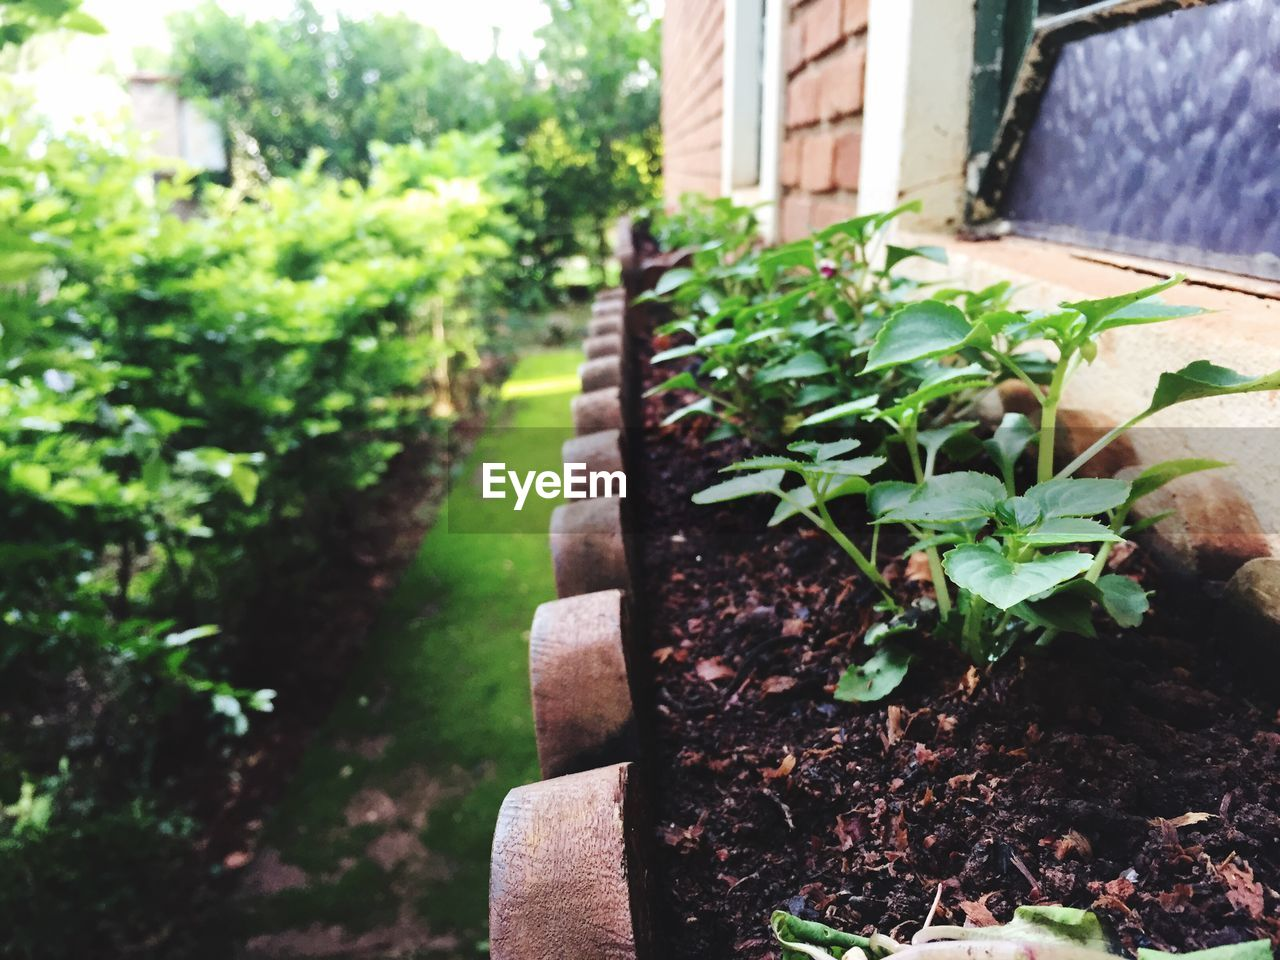 growth, plant, nature, outdoors, building exterior, day, potted plant, green color, built structure, front or back yard, no people, leaf, architecture, close-up, freshness